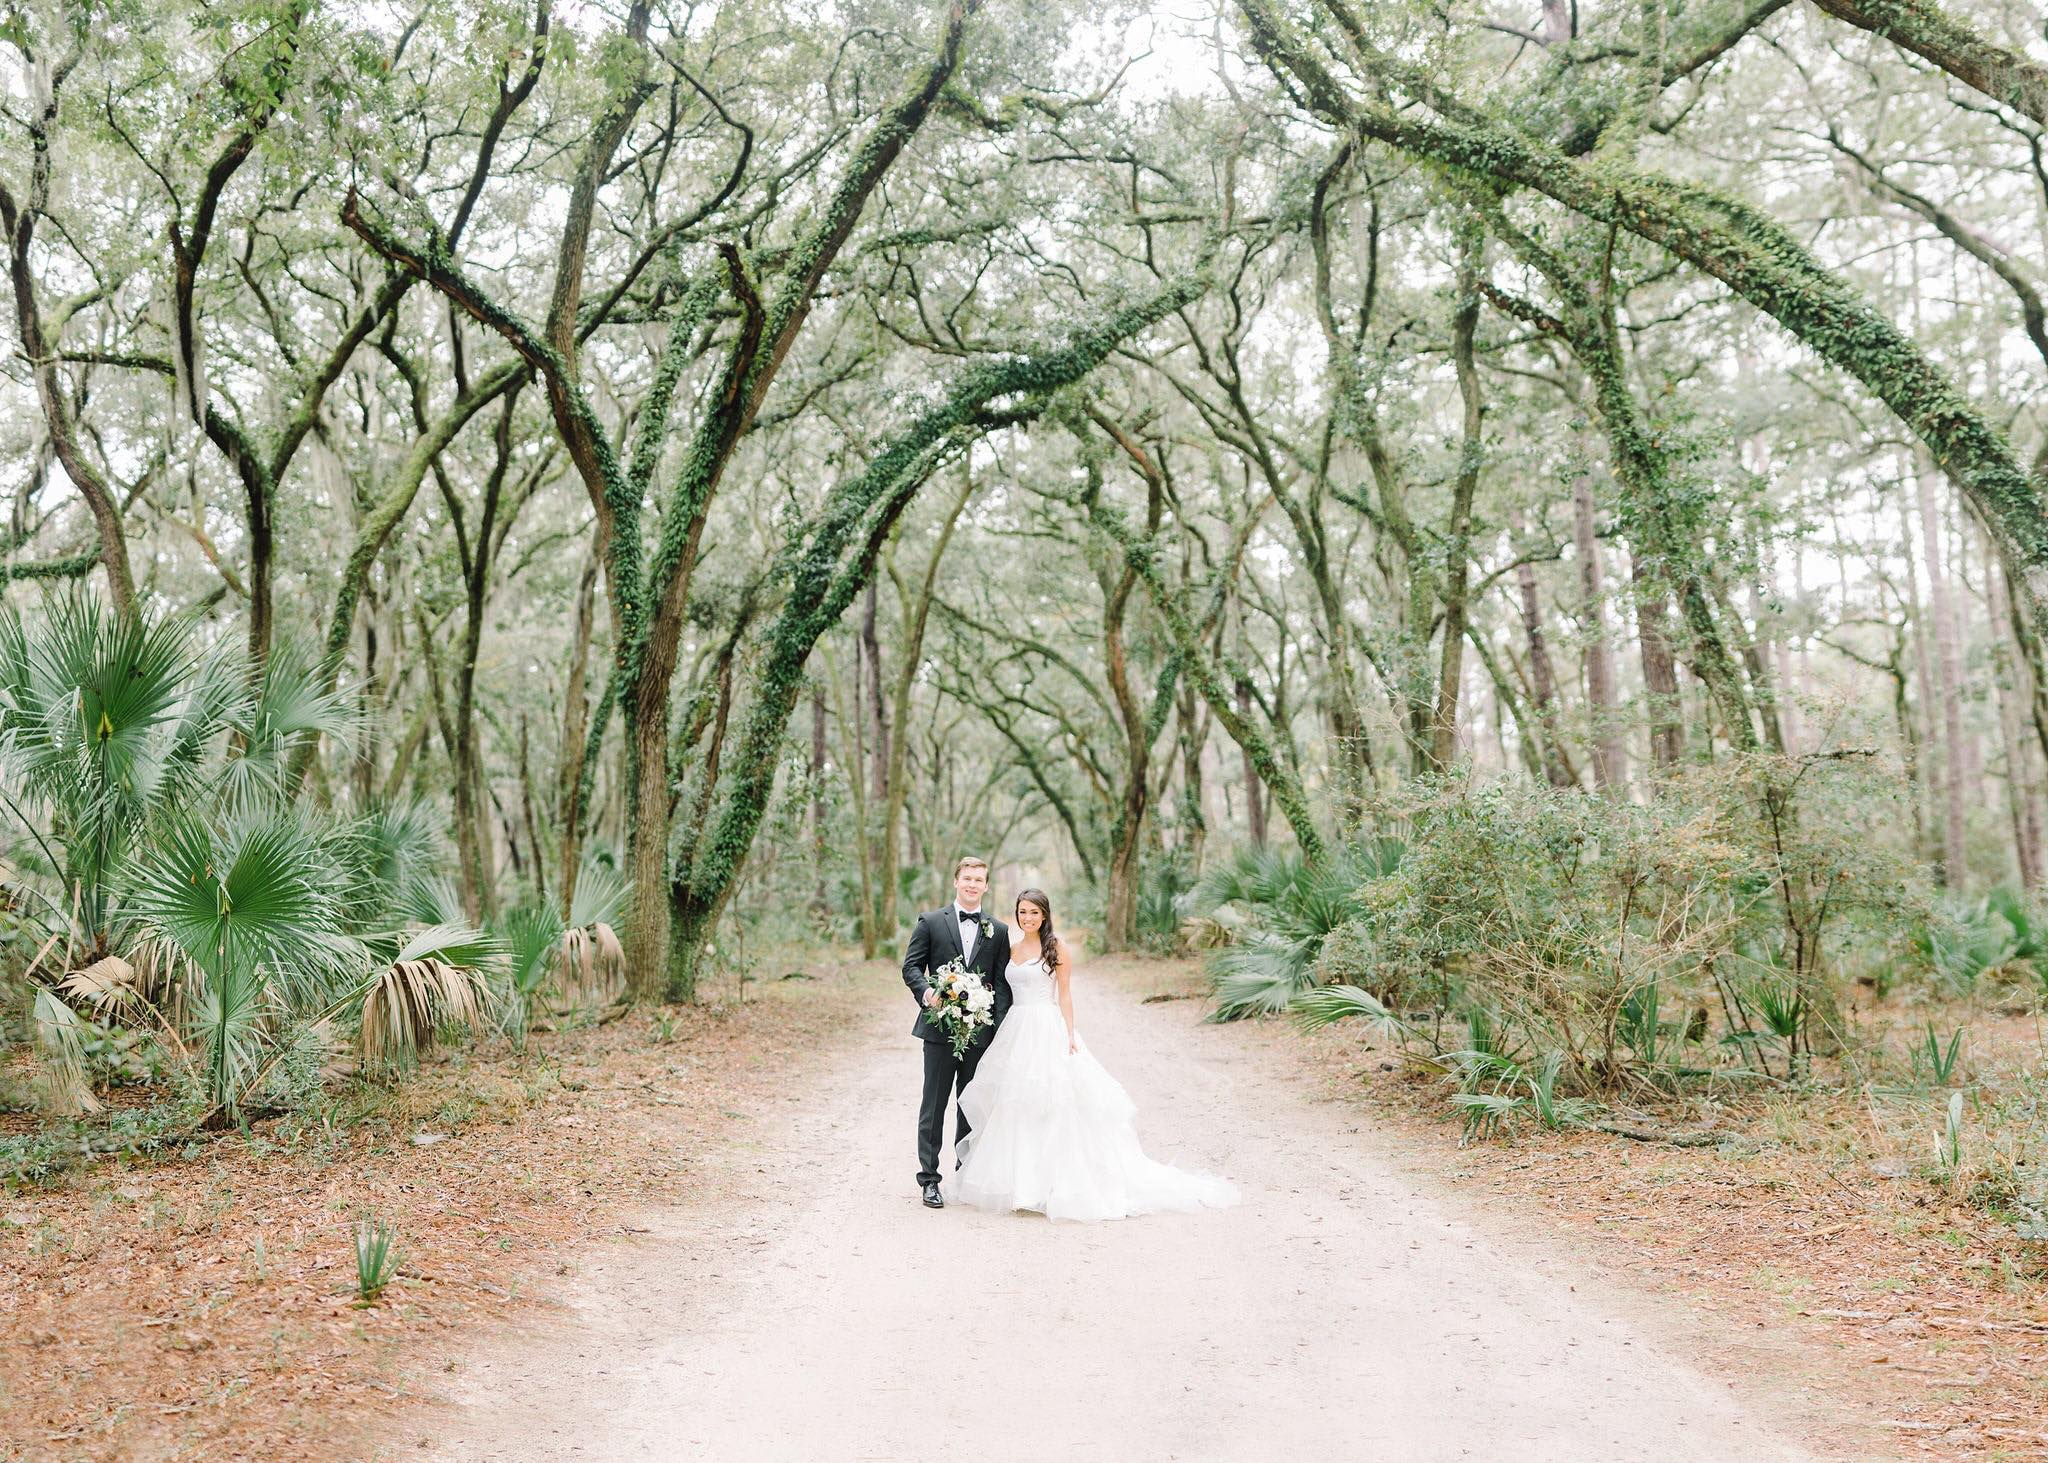 Alexa + Will | Bluffton, South Carolina | Palmetto Bluff